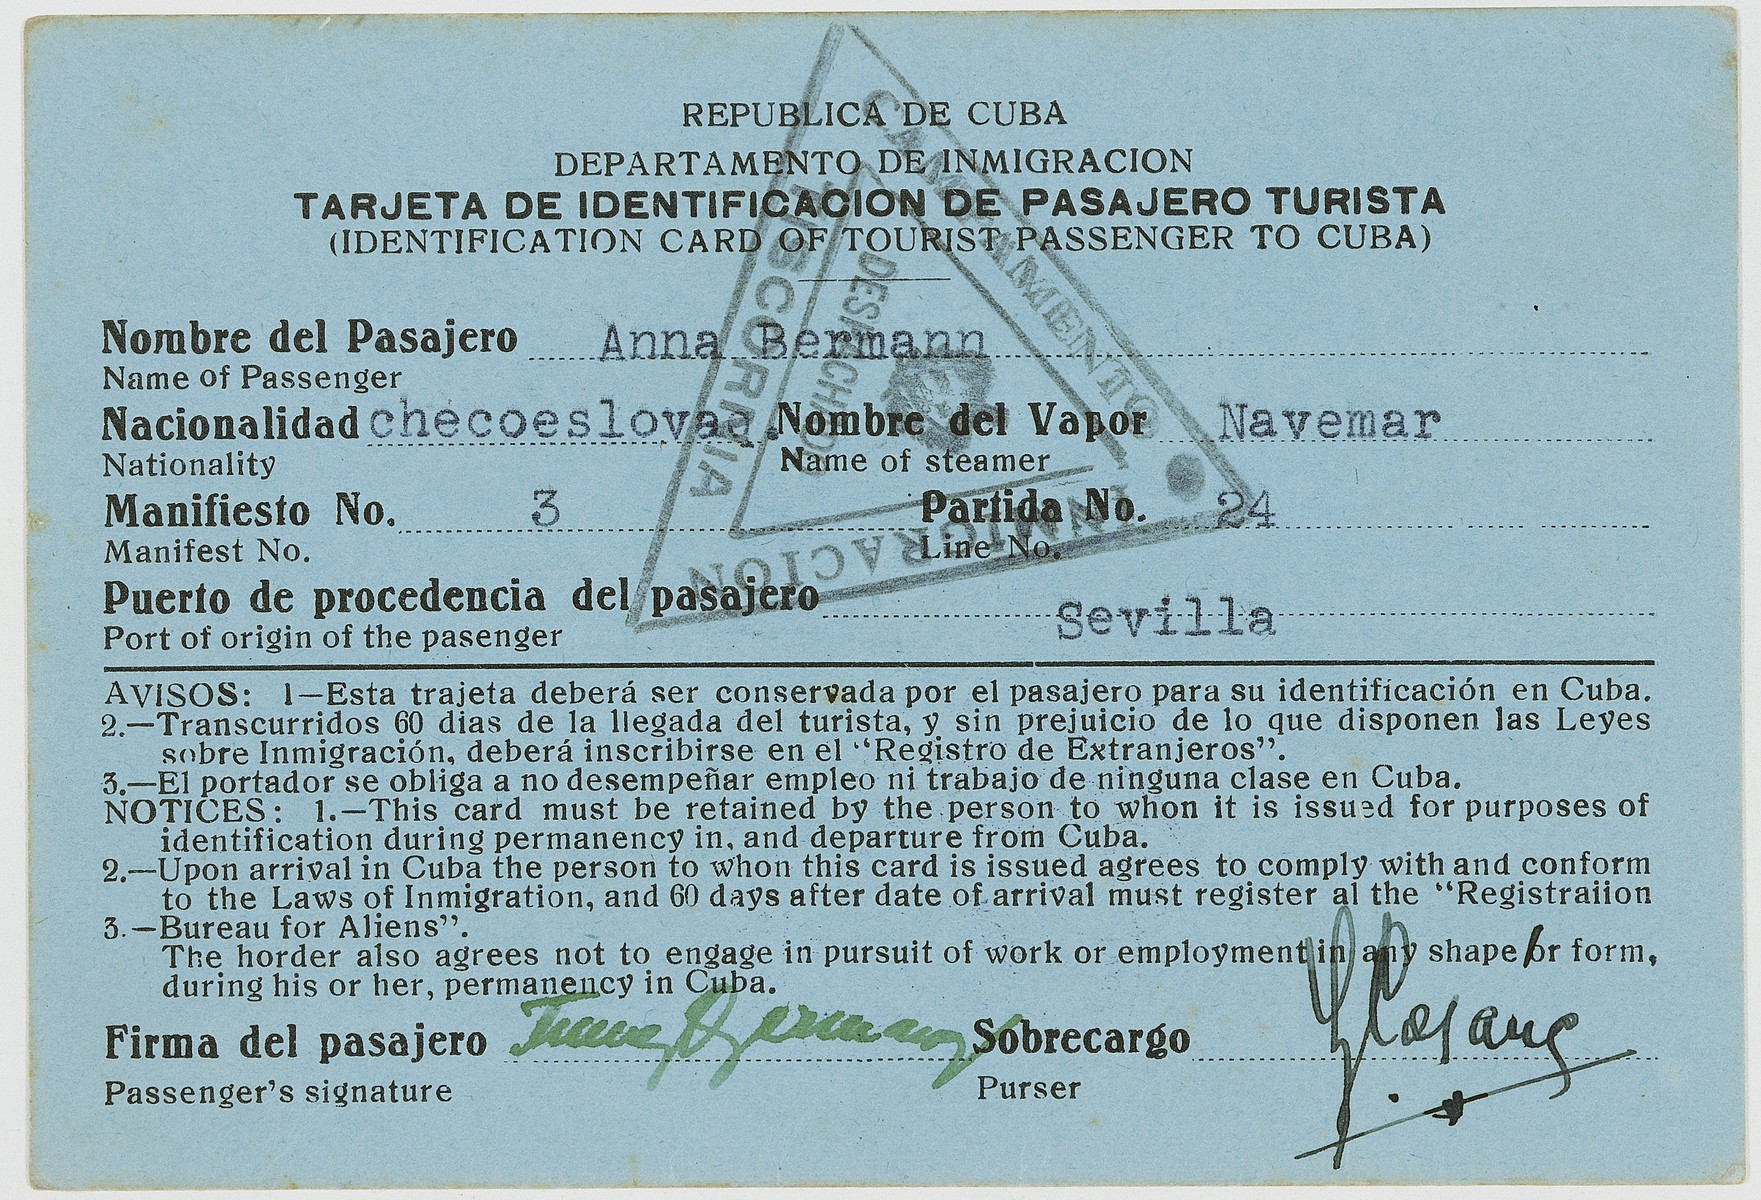 Identification papers issued to Anna Bermann allowing her to enter Cuba as a tourist.